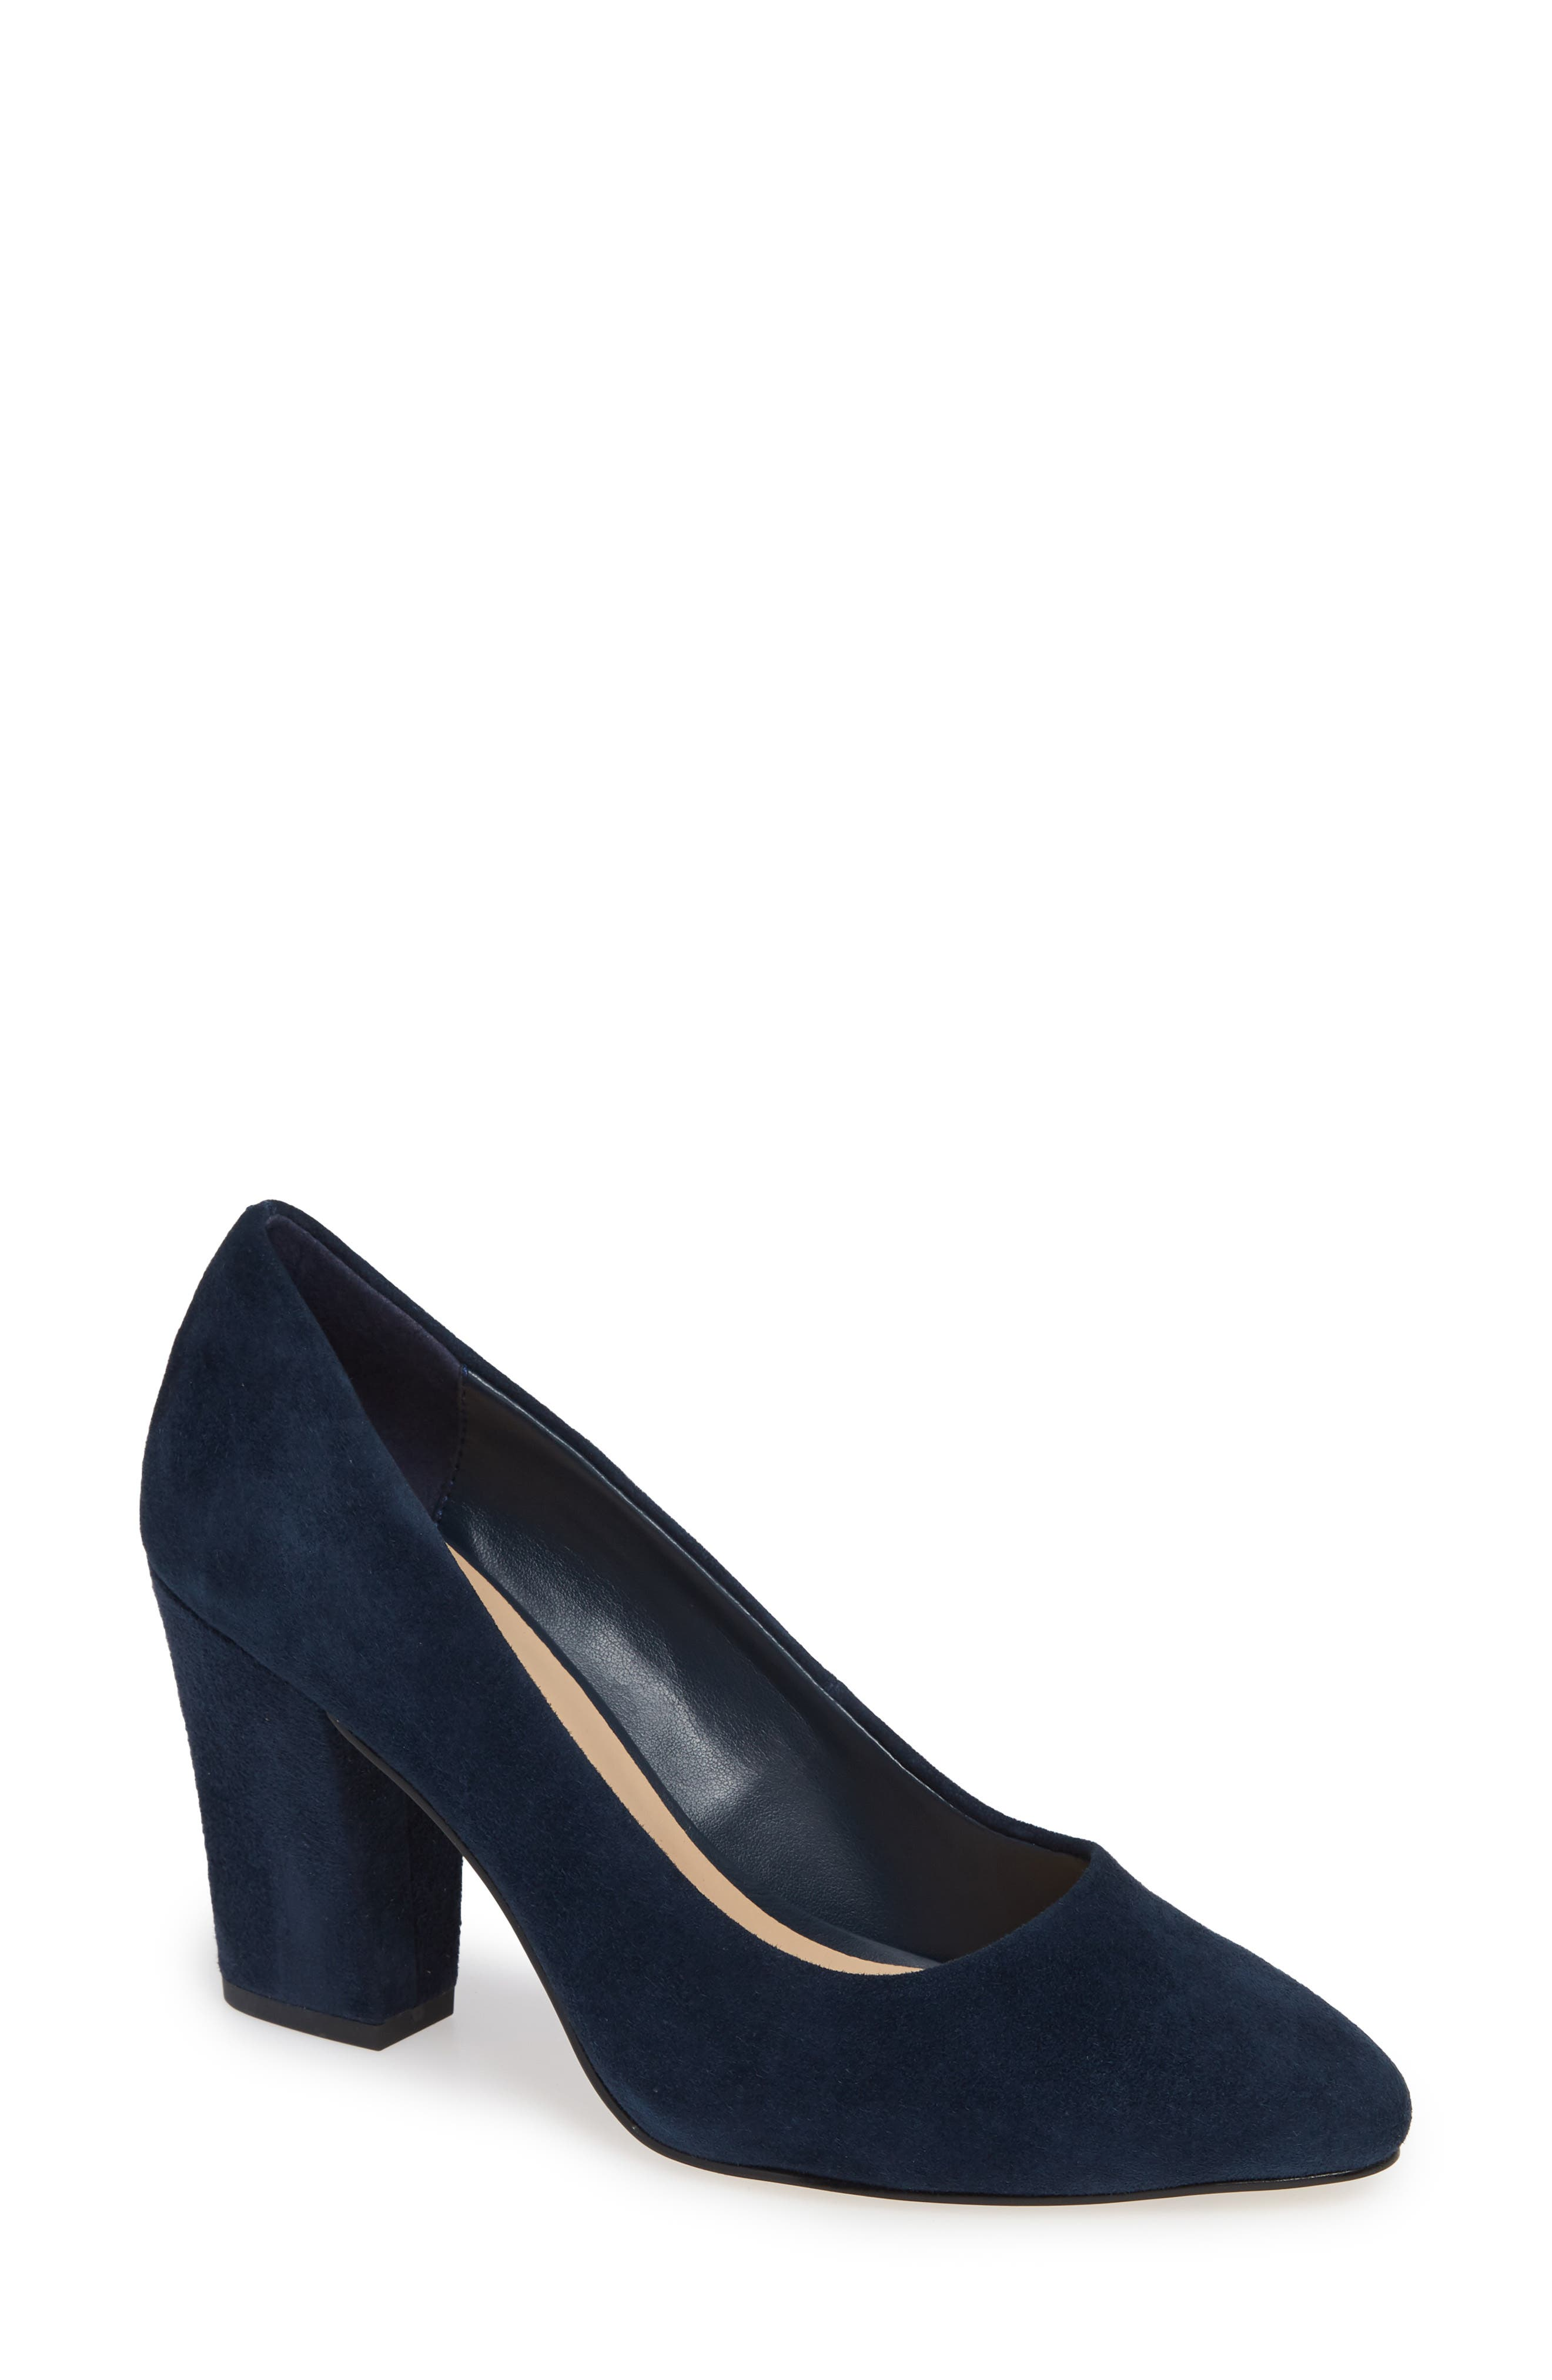 BELLA VITA Gigi Pump, Main, color, NAVY SUEDE